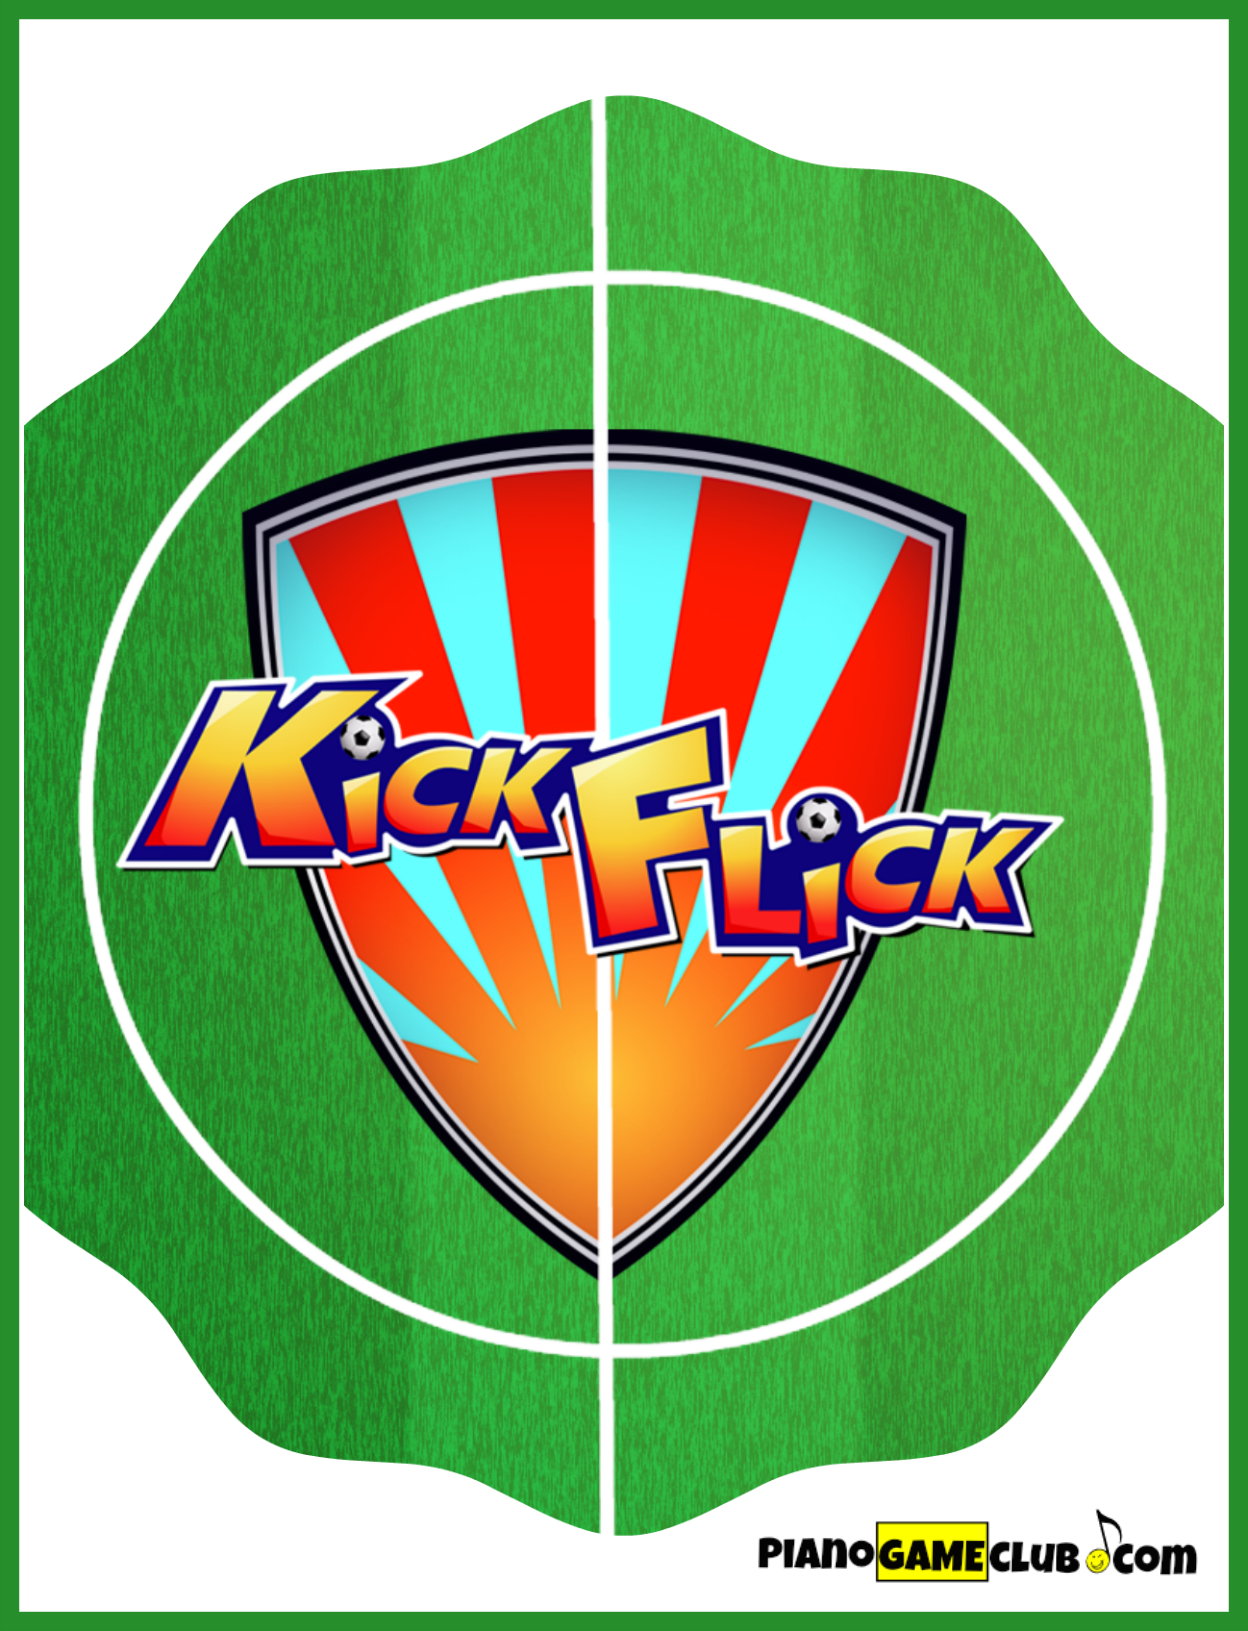 Kick Flick I Know You Ll Make Time For This Soccer Themed